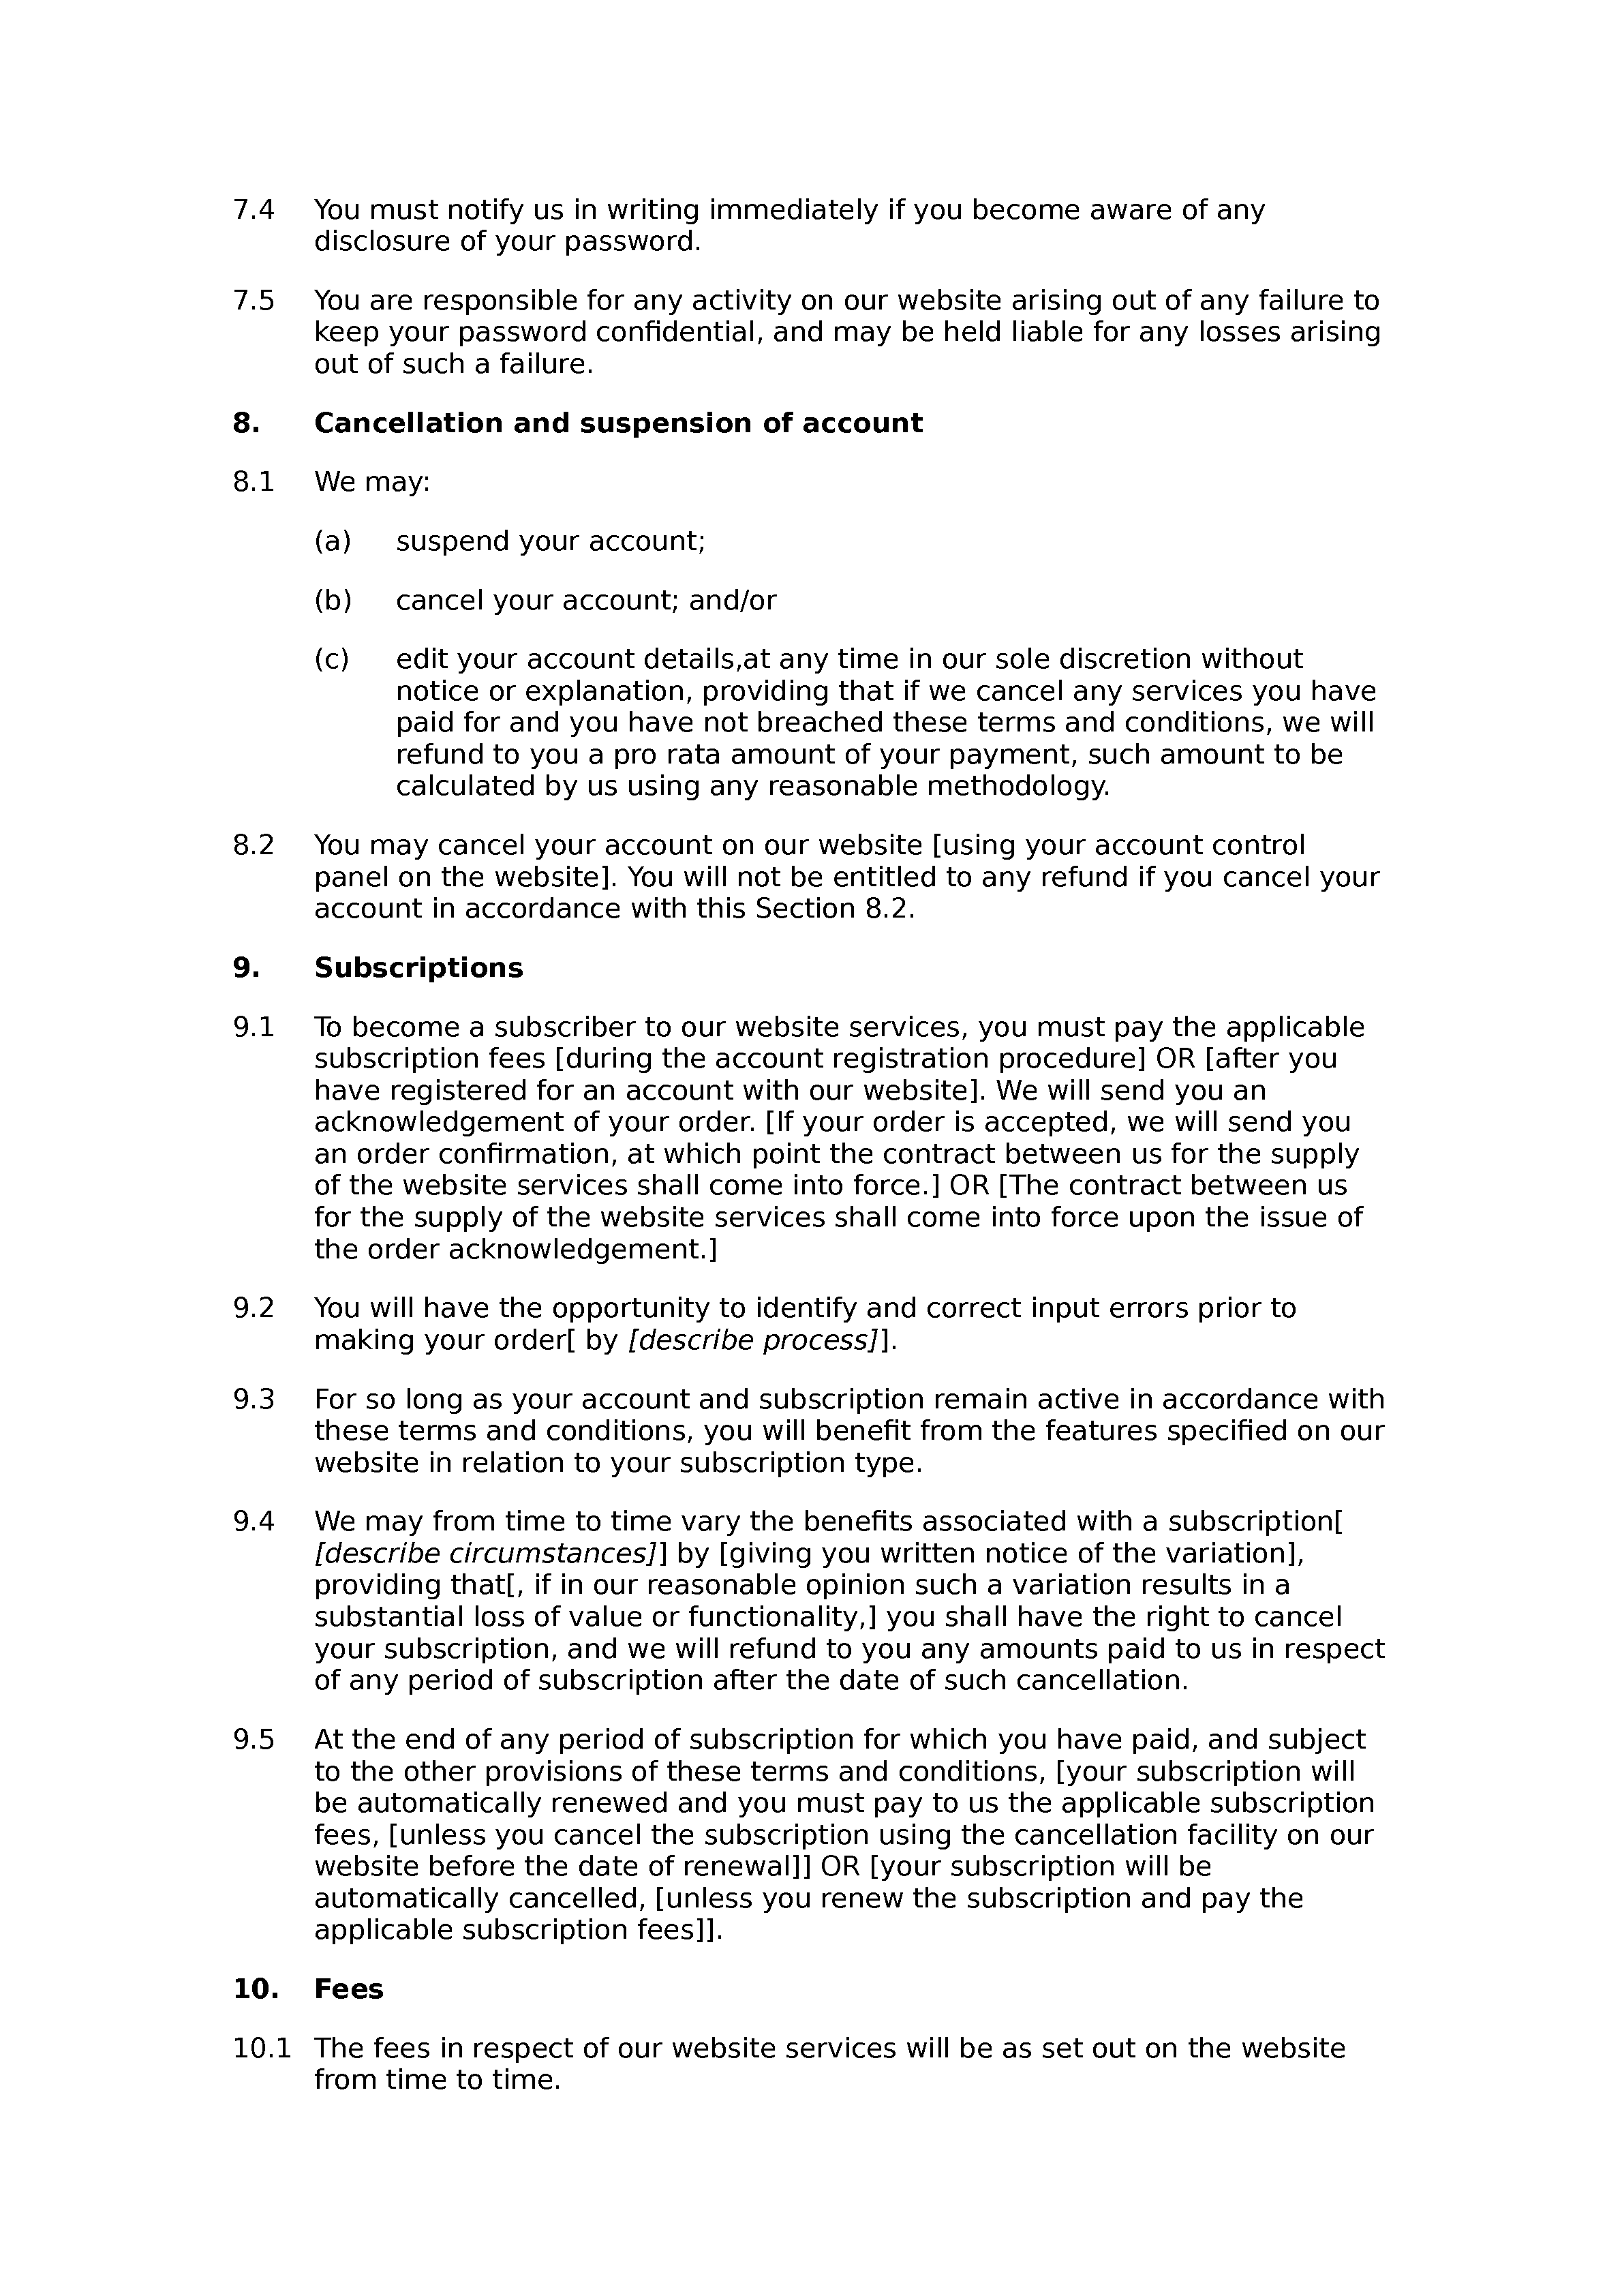 Legal subscription website terms and conditions document preview